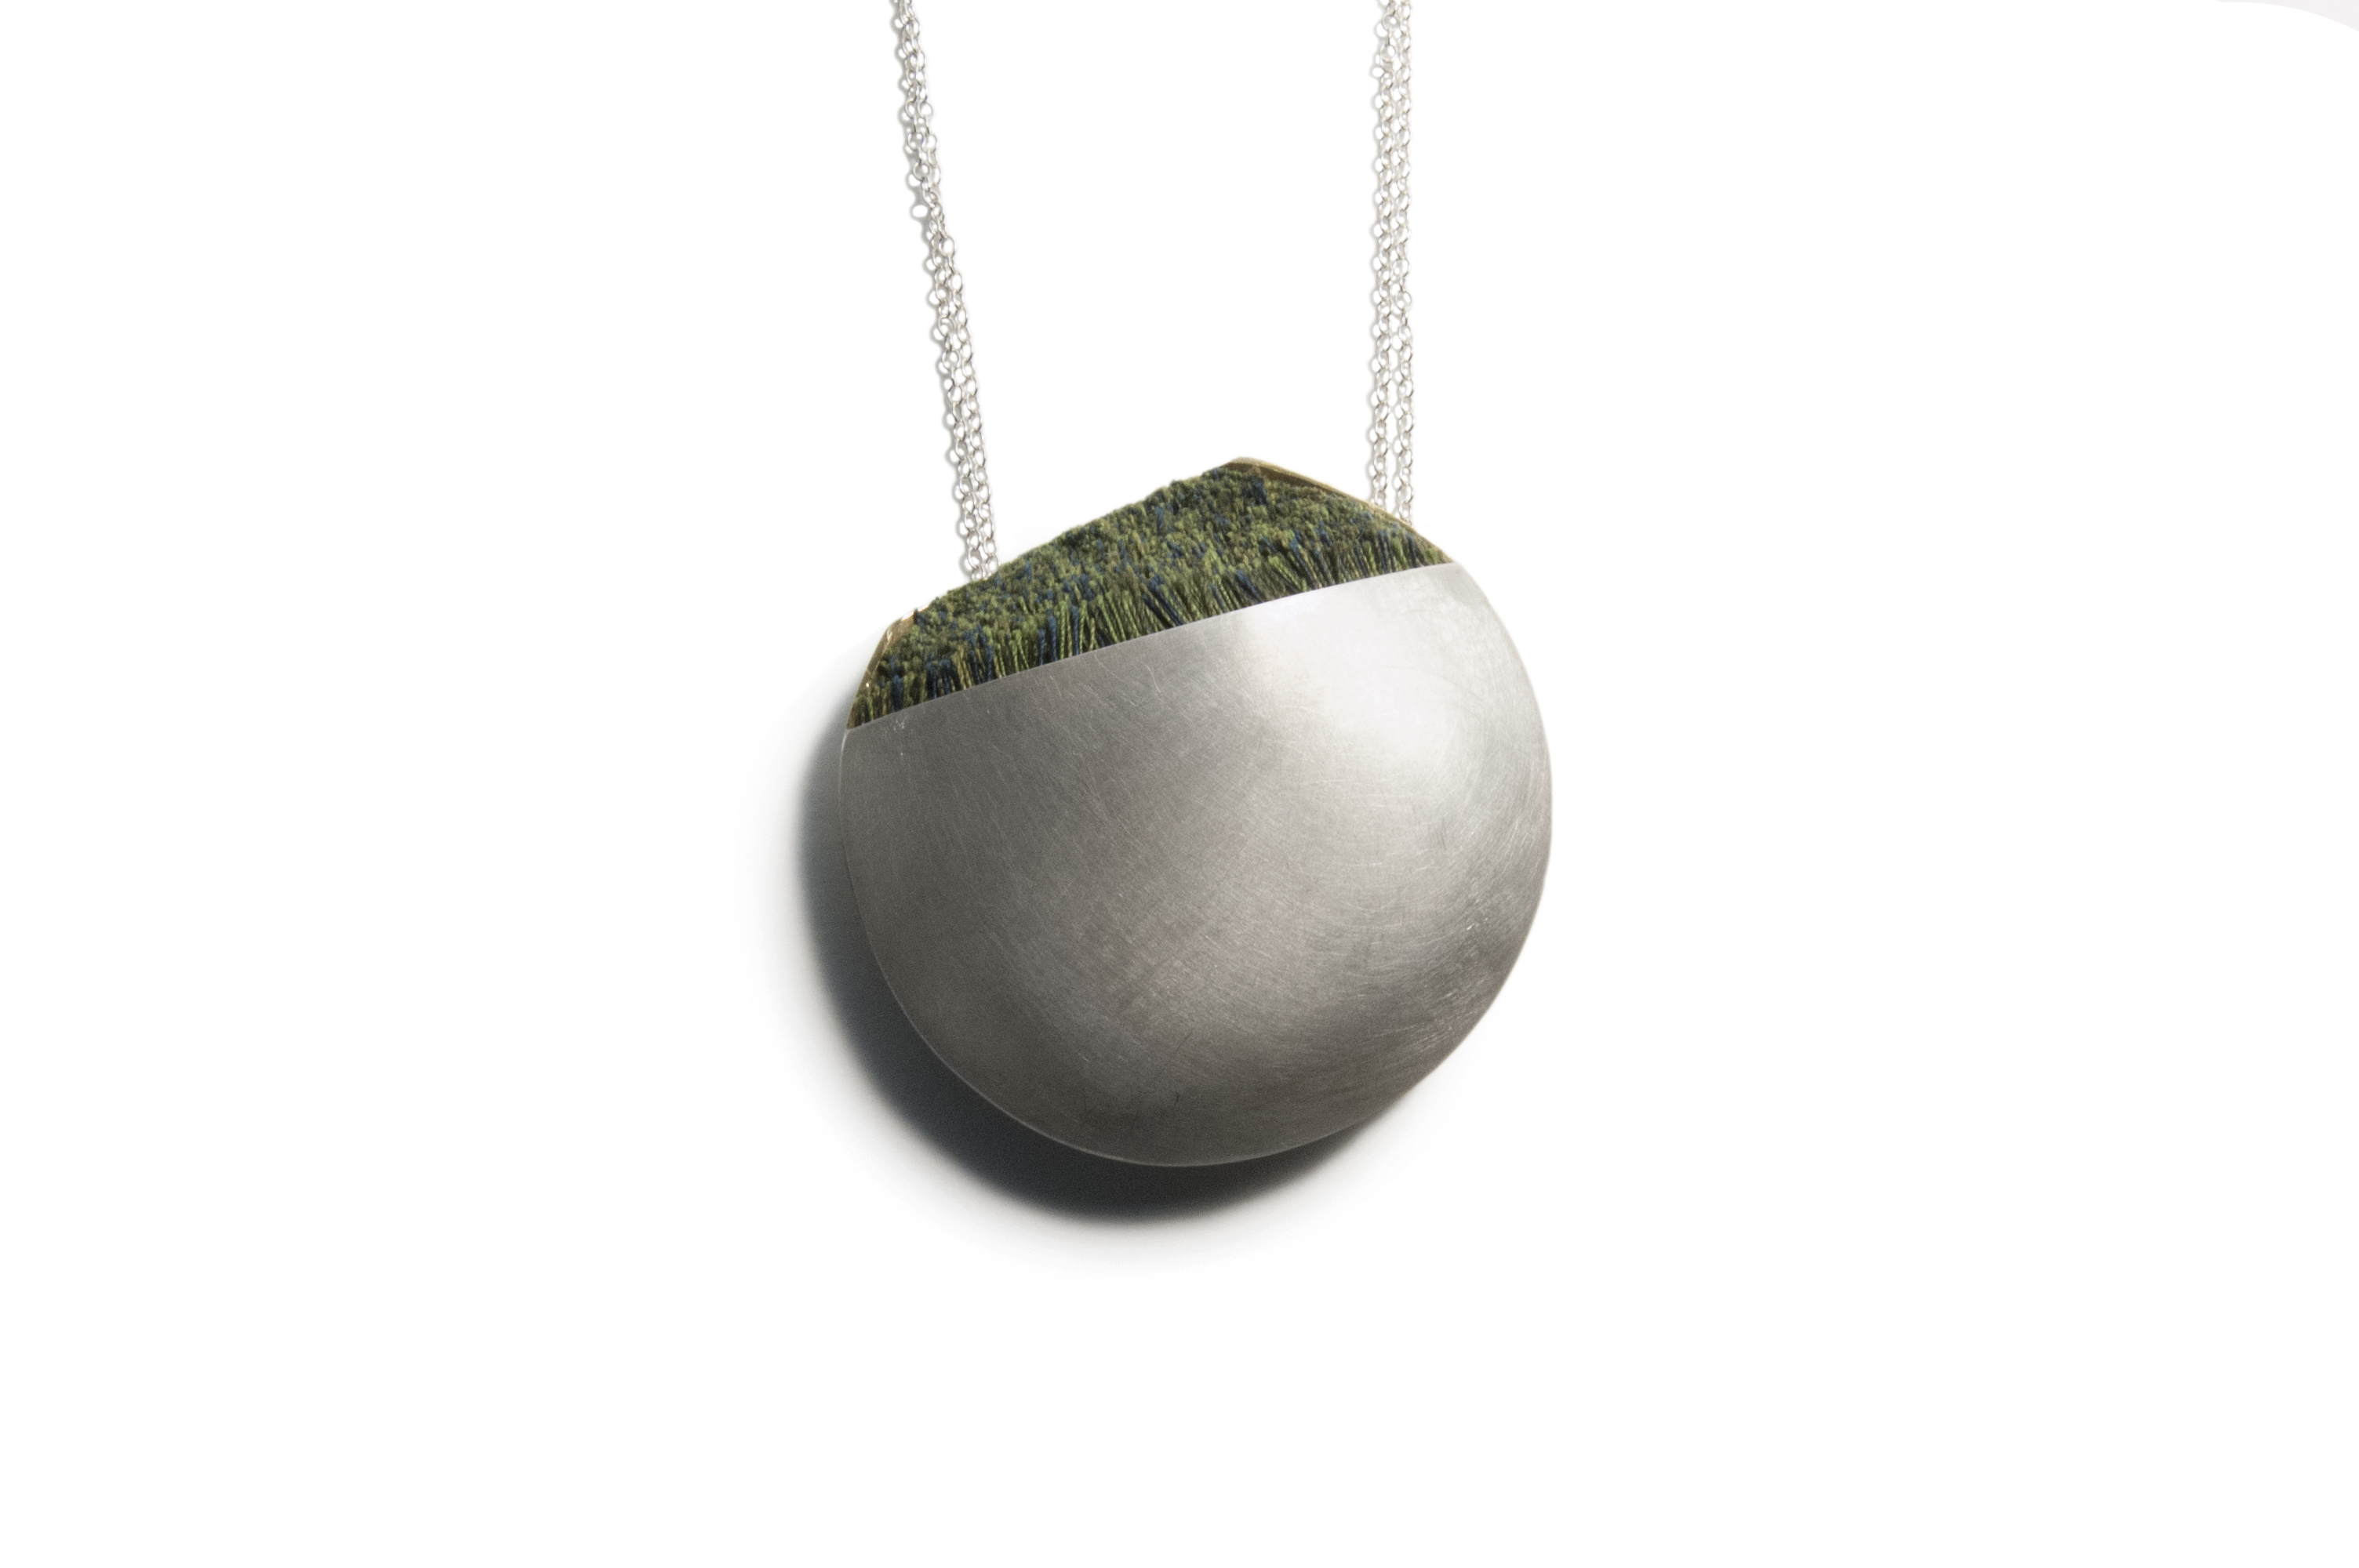 Metal round pendant necklace with green accent